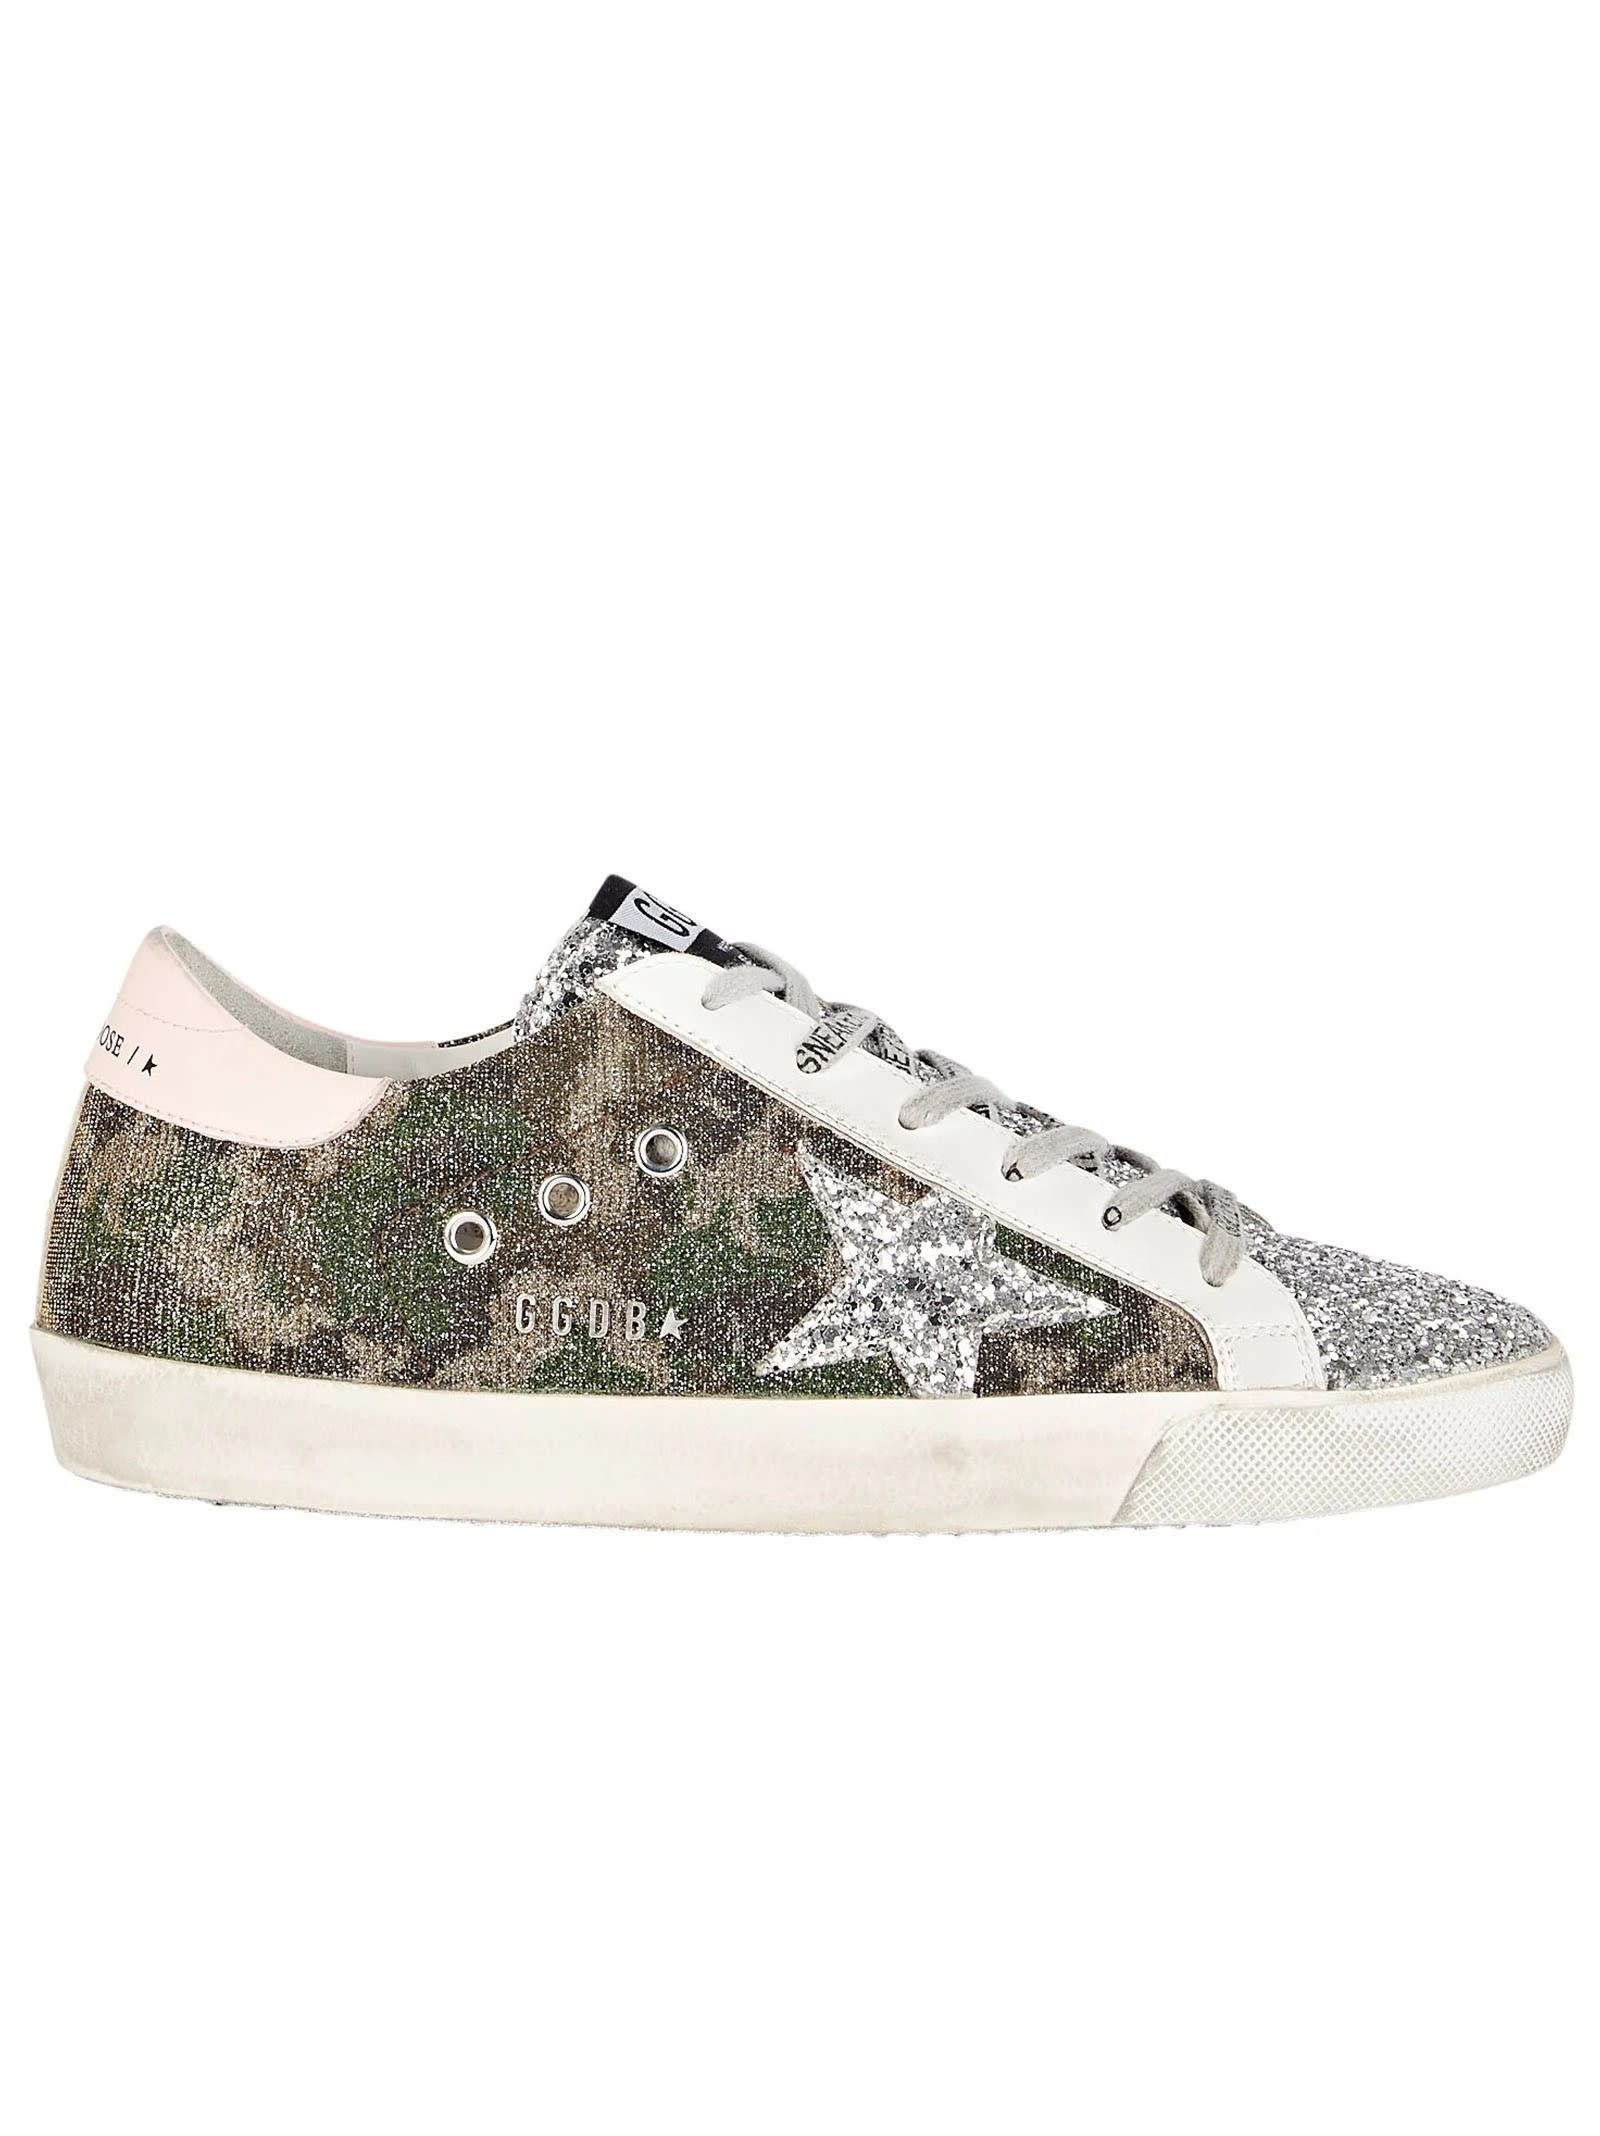 Buy Golden Goose Camouflage Glitter Superstar Sneakers online, shop Golden Goose shoes with free shipping